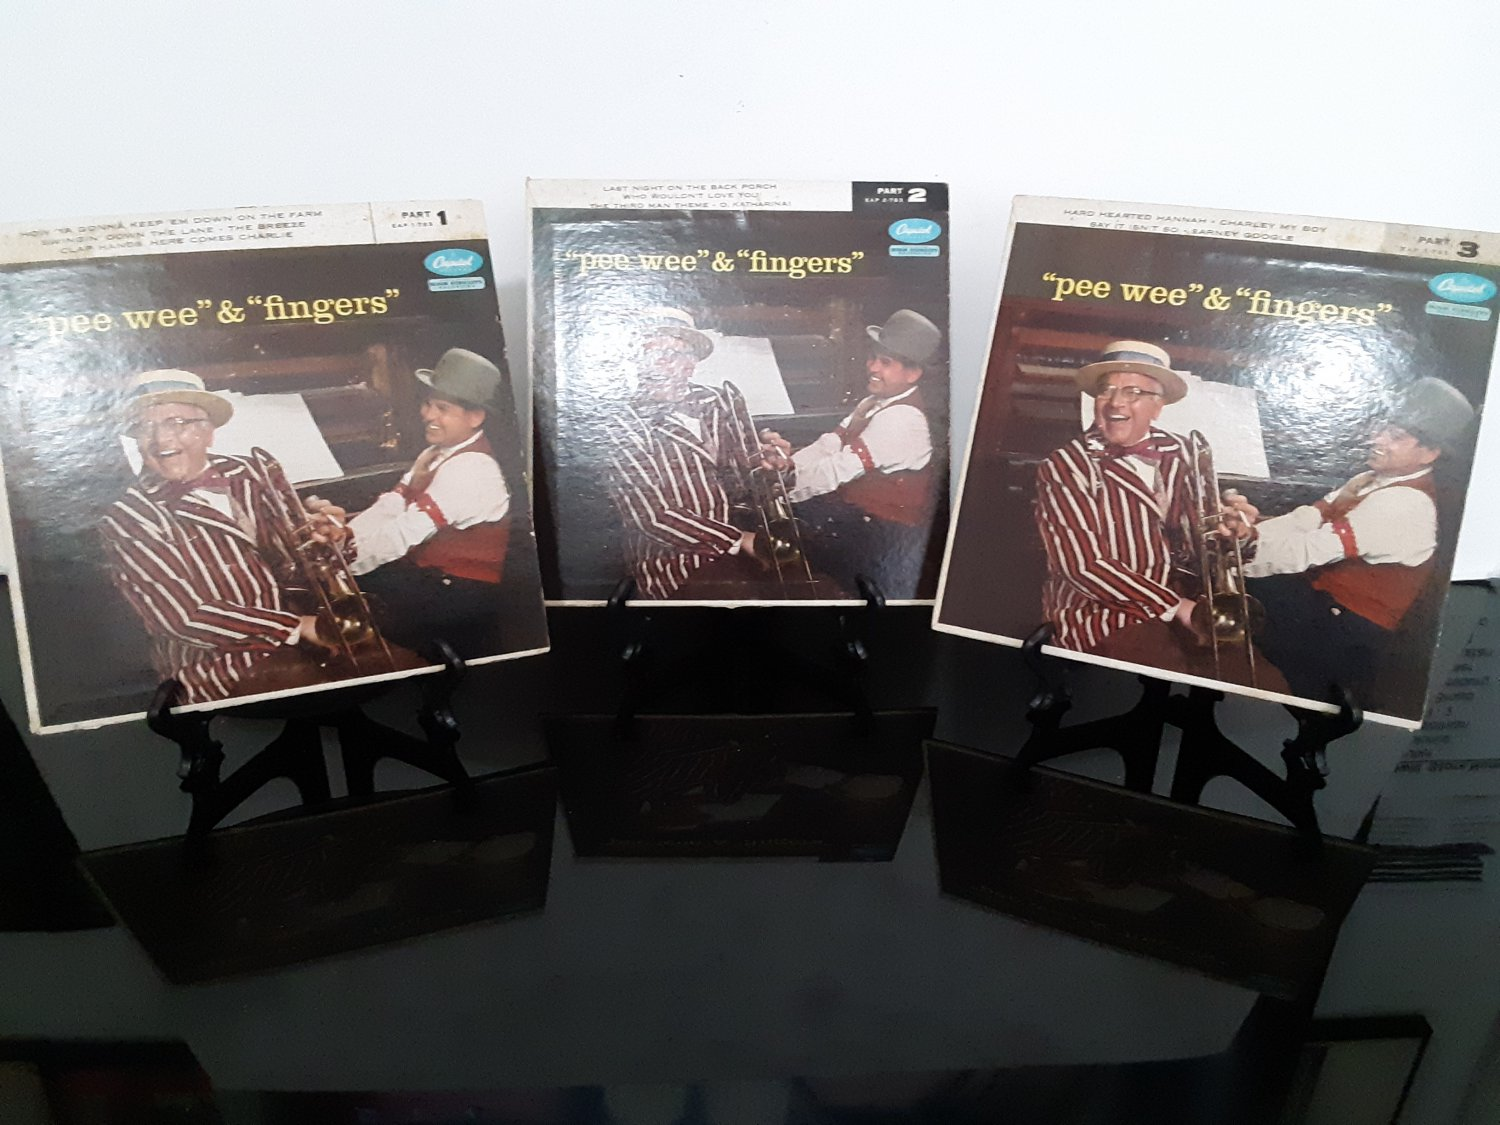 """Pee Wee Hunt & Joe """"Fingers' Carr - Lot of 3 Records - """"Pee Wee and Fingers"""" - Parts 1,2,3"""